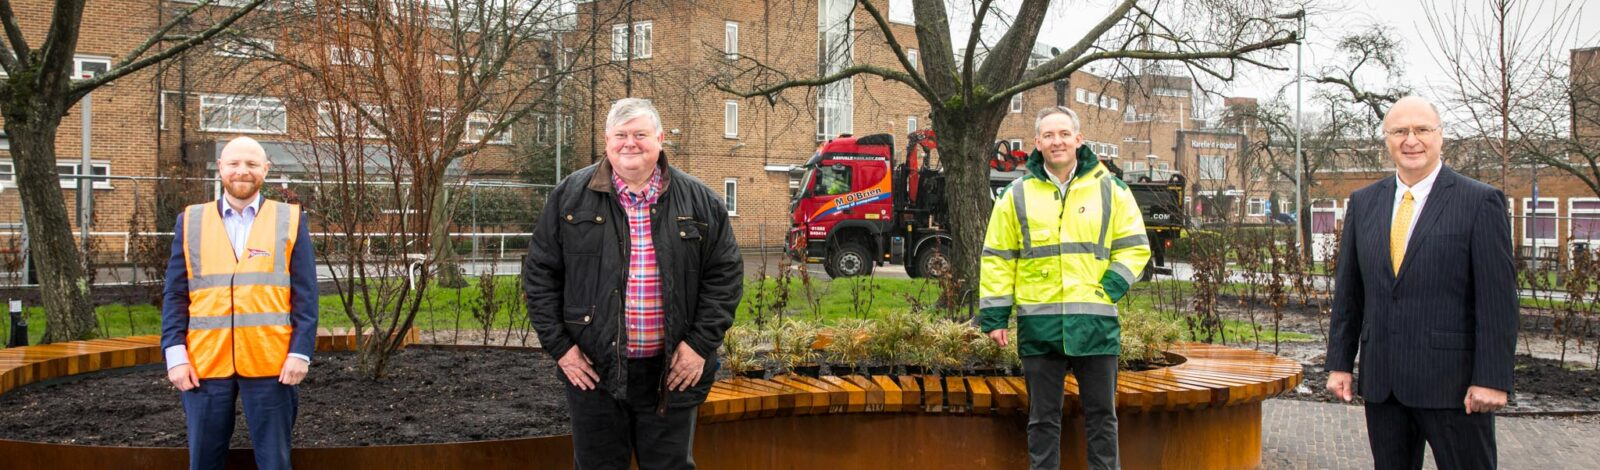 Helping break ground on a healing garden for Harefield Hospital - Clancy